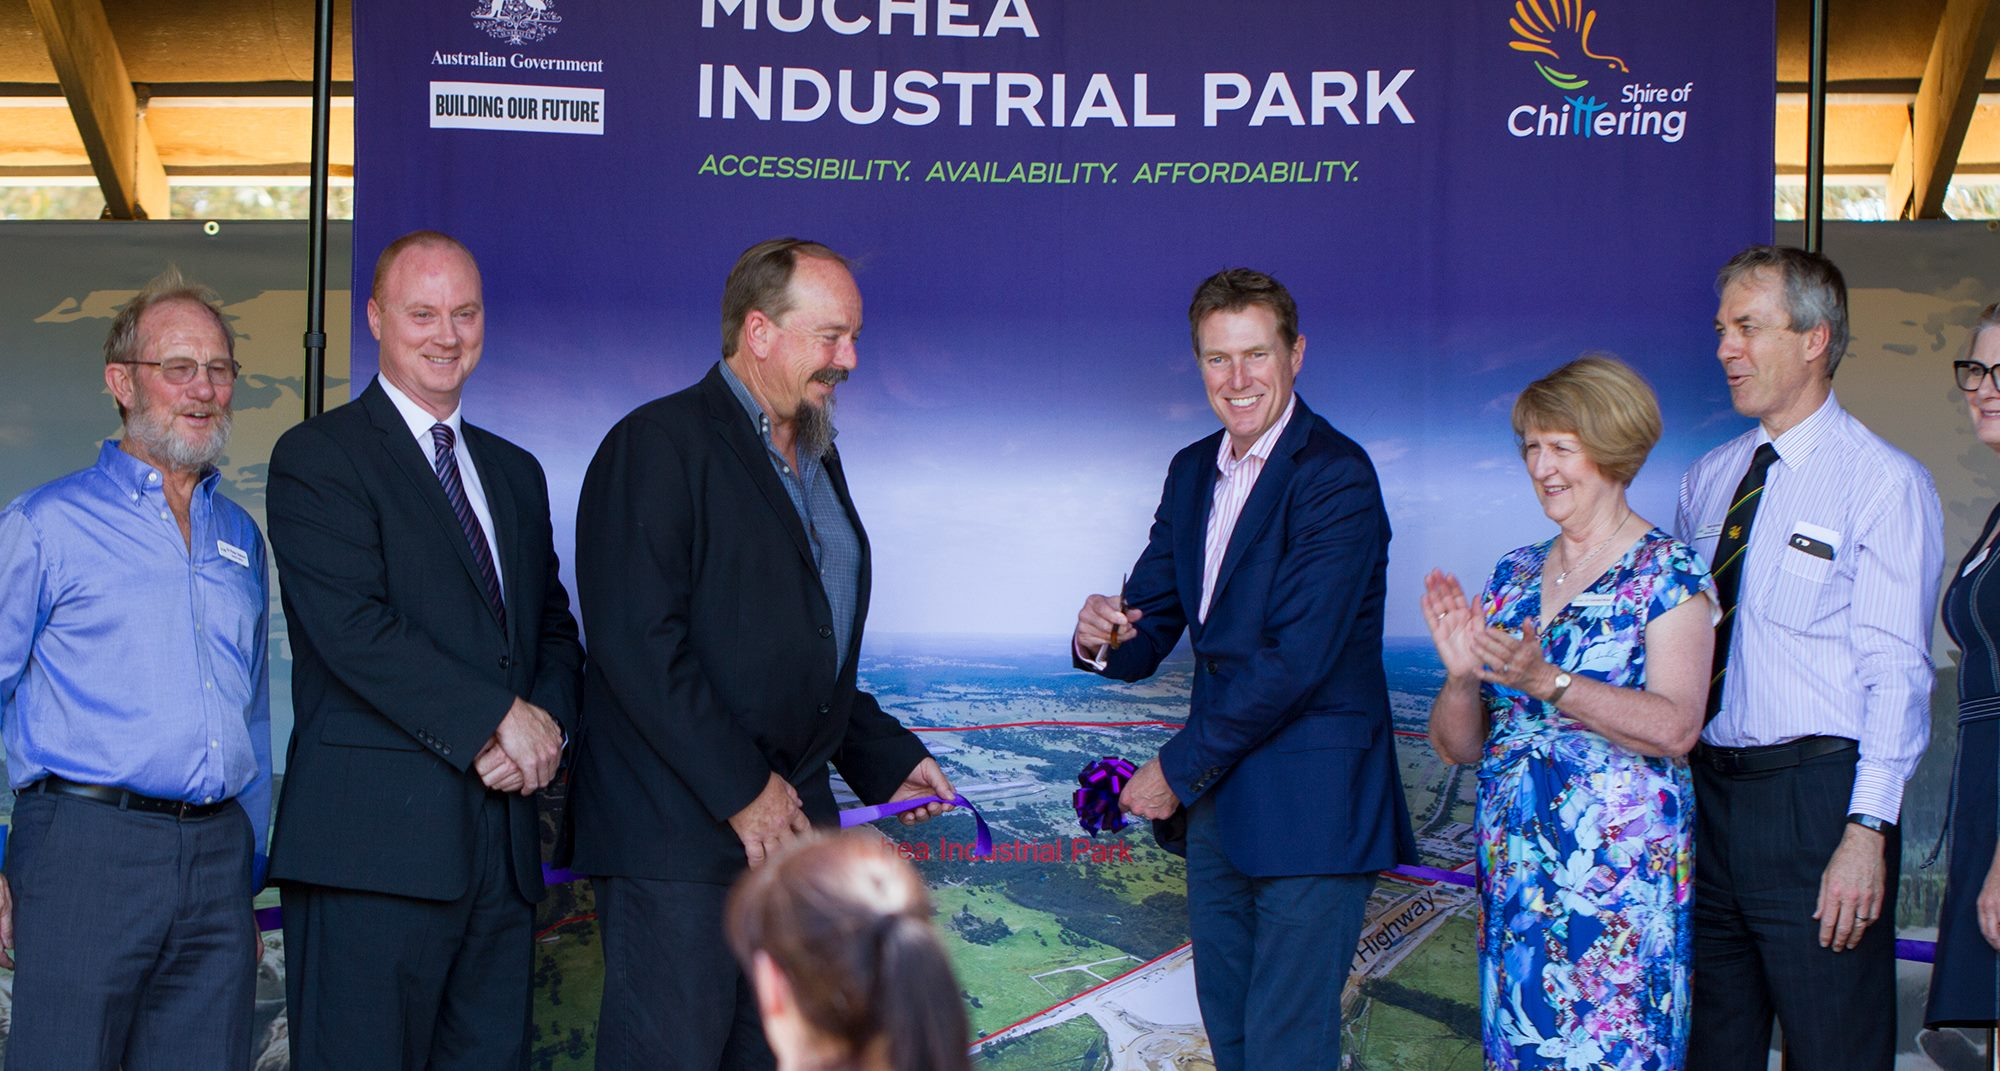 From left to right, Shire of Chittering Councillors: Deputy Shire President Cr Peter Osborn, Cr George Tilbury, Shire President Cr Gordon Houston, MHR Christian Porter, Cr Carmel Ross, Acting Chief Executive Officer Neil Hartley and Special Projects Manager Lisa Edwards at the Muchea Industrial Park Investment Prospectus Launch